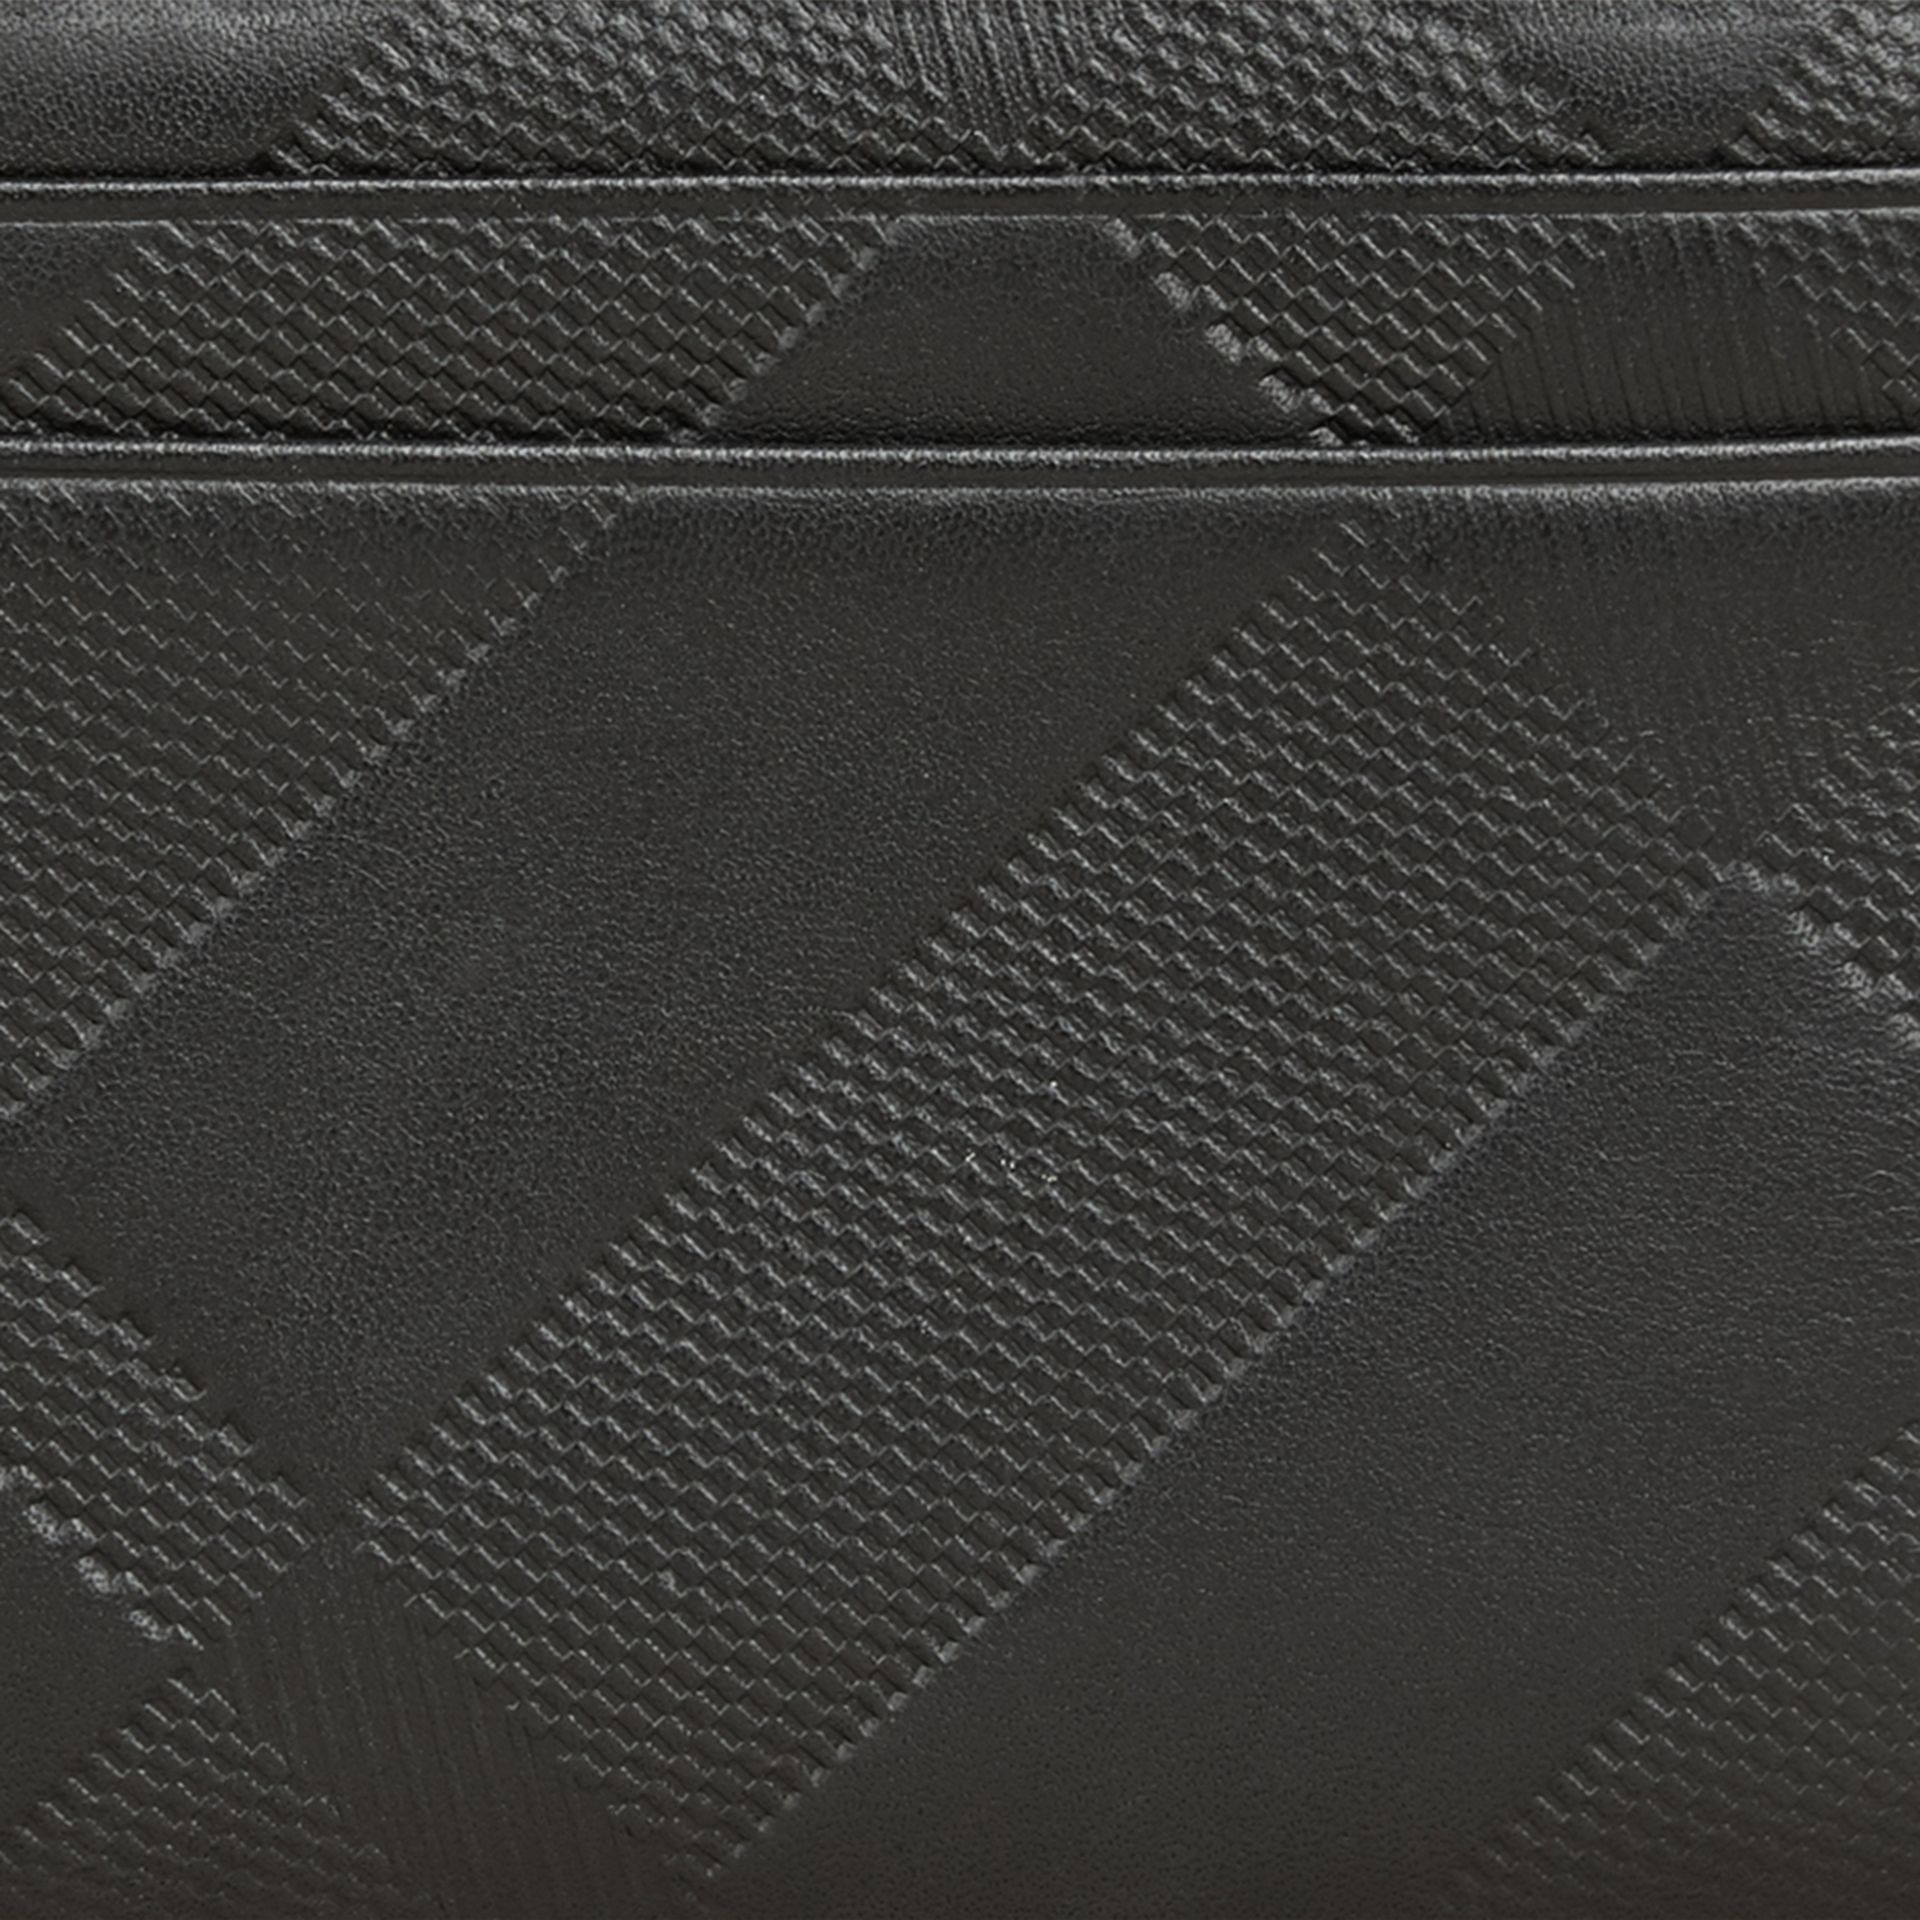 Black Embossed Check Leather Folding Wallet Black - gallery image 2